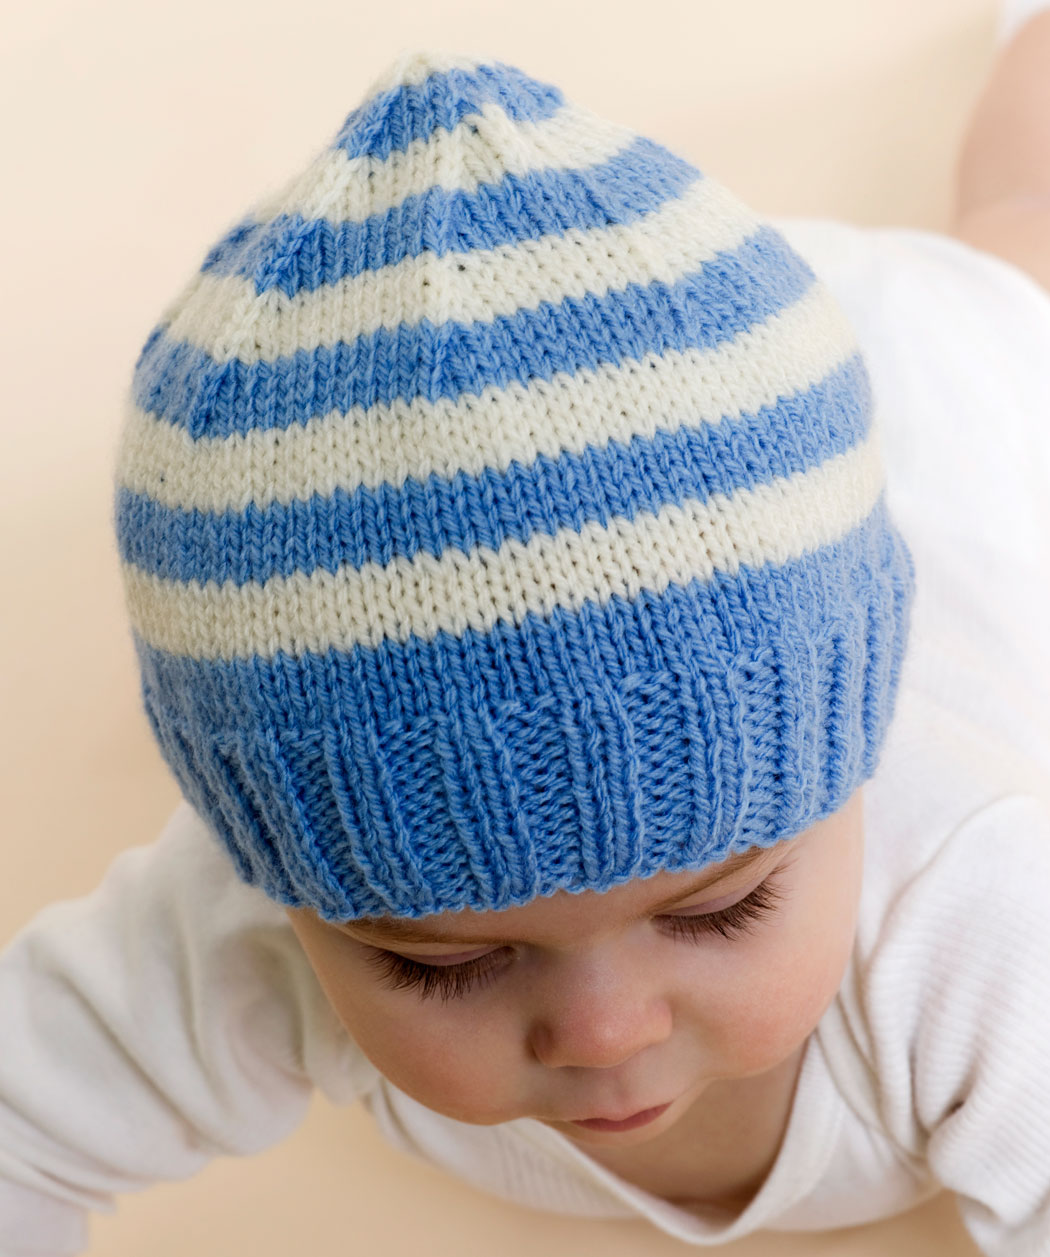 Knitting Patterns Child Hats Free : Knitting Hats   Tag Hats